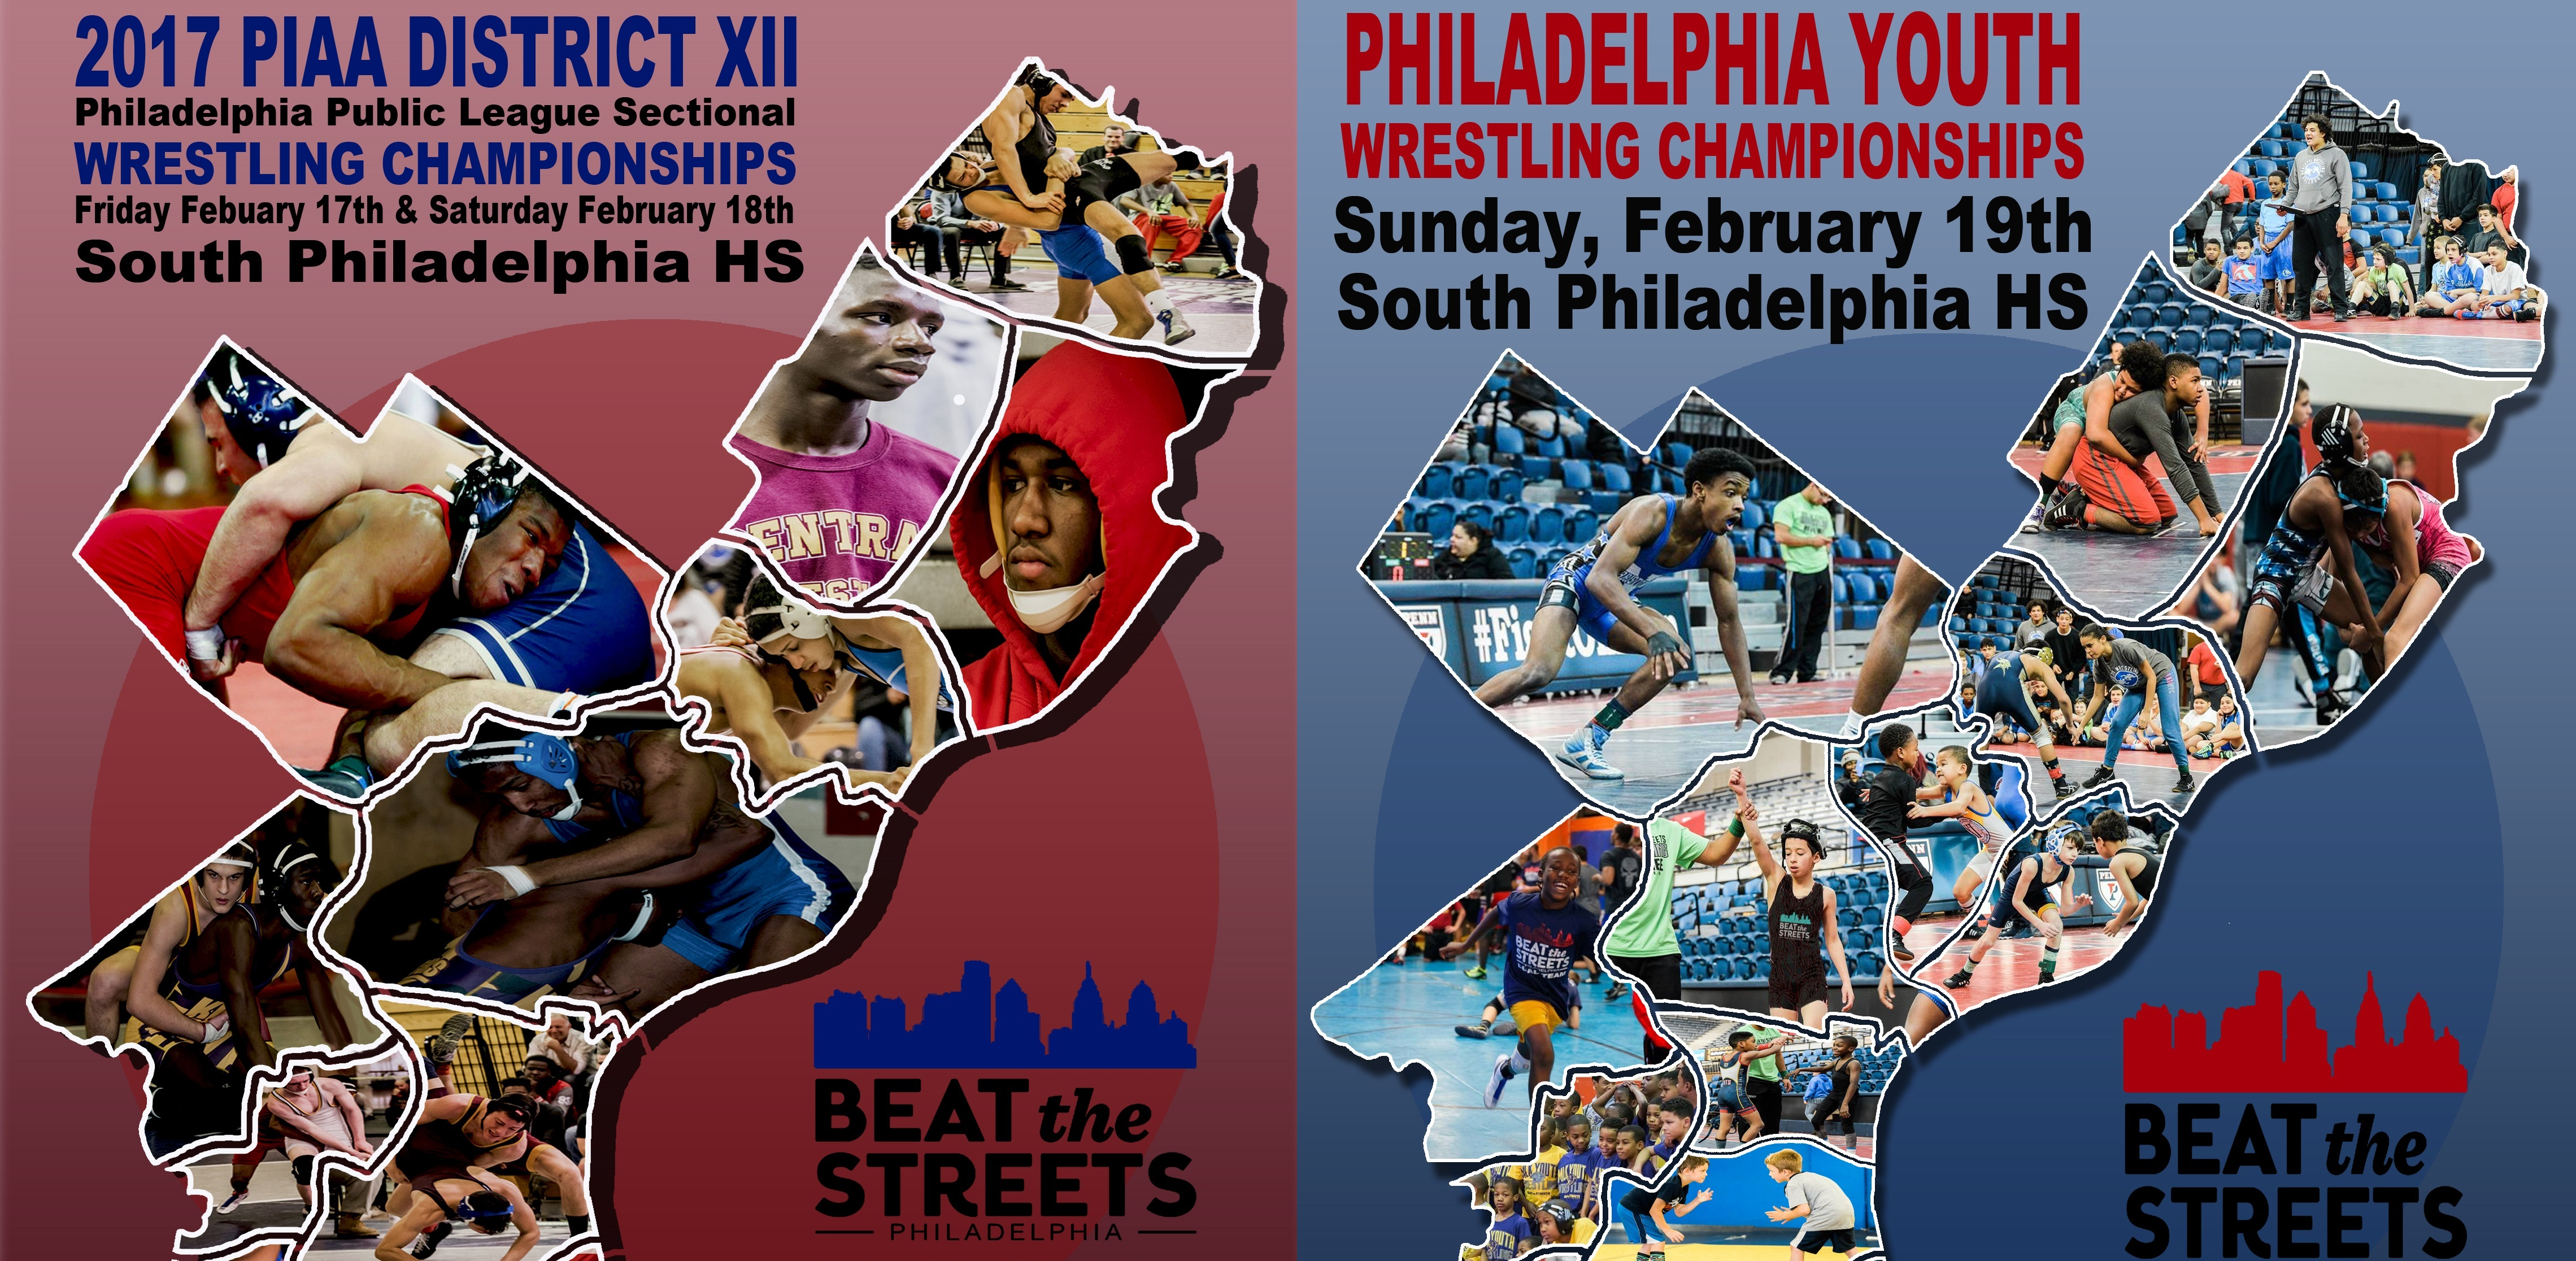 Philadelphia Public League Sectional and Youth Wrestling Championships